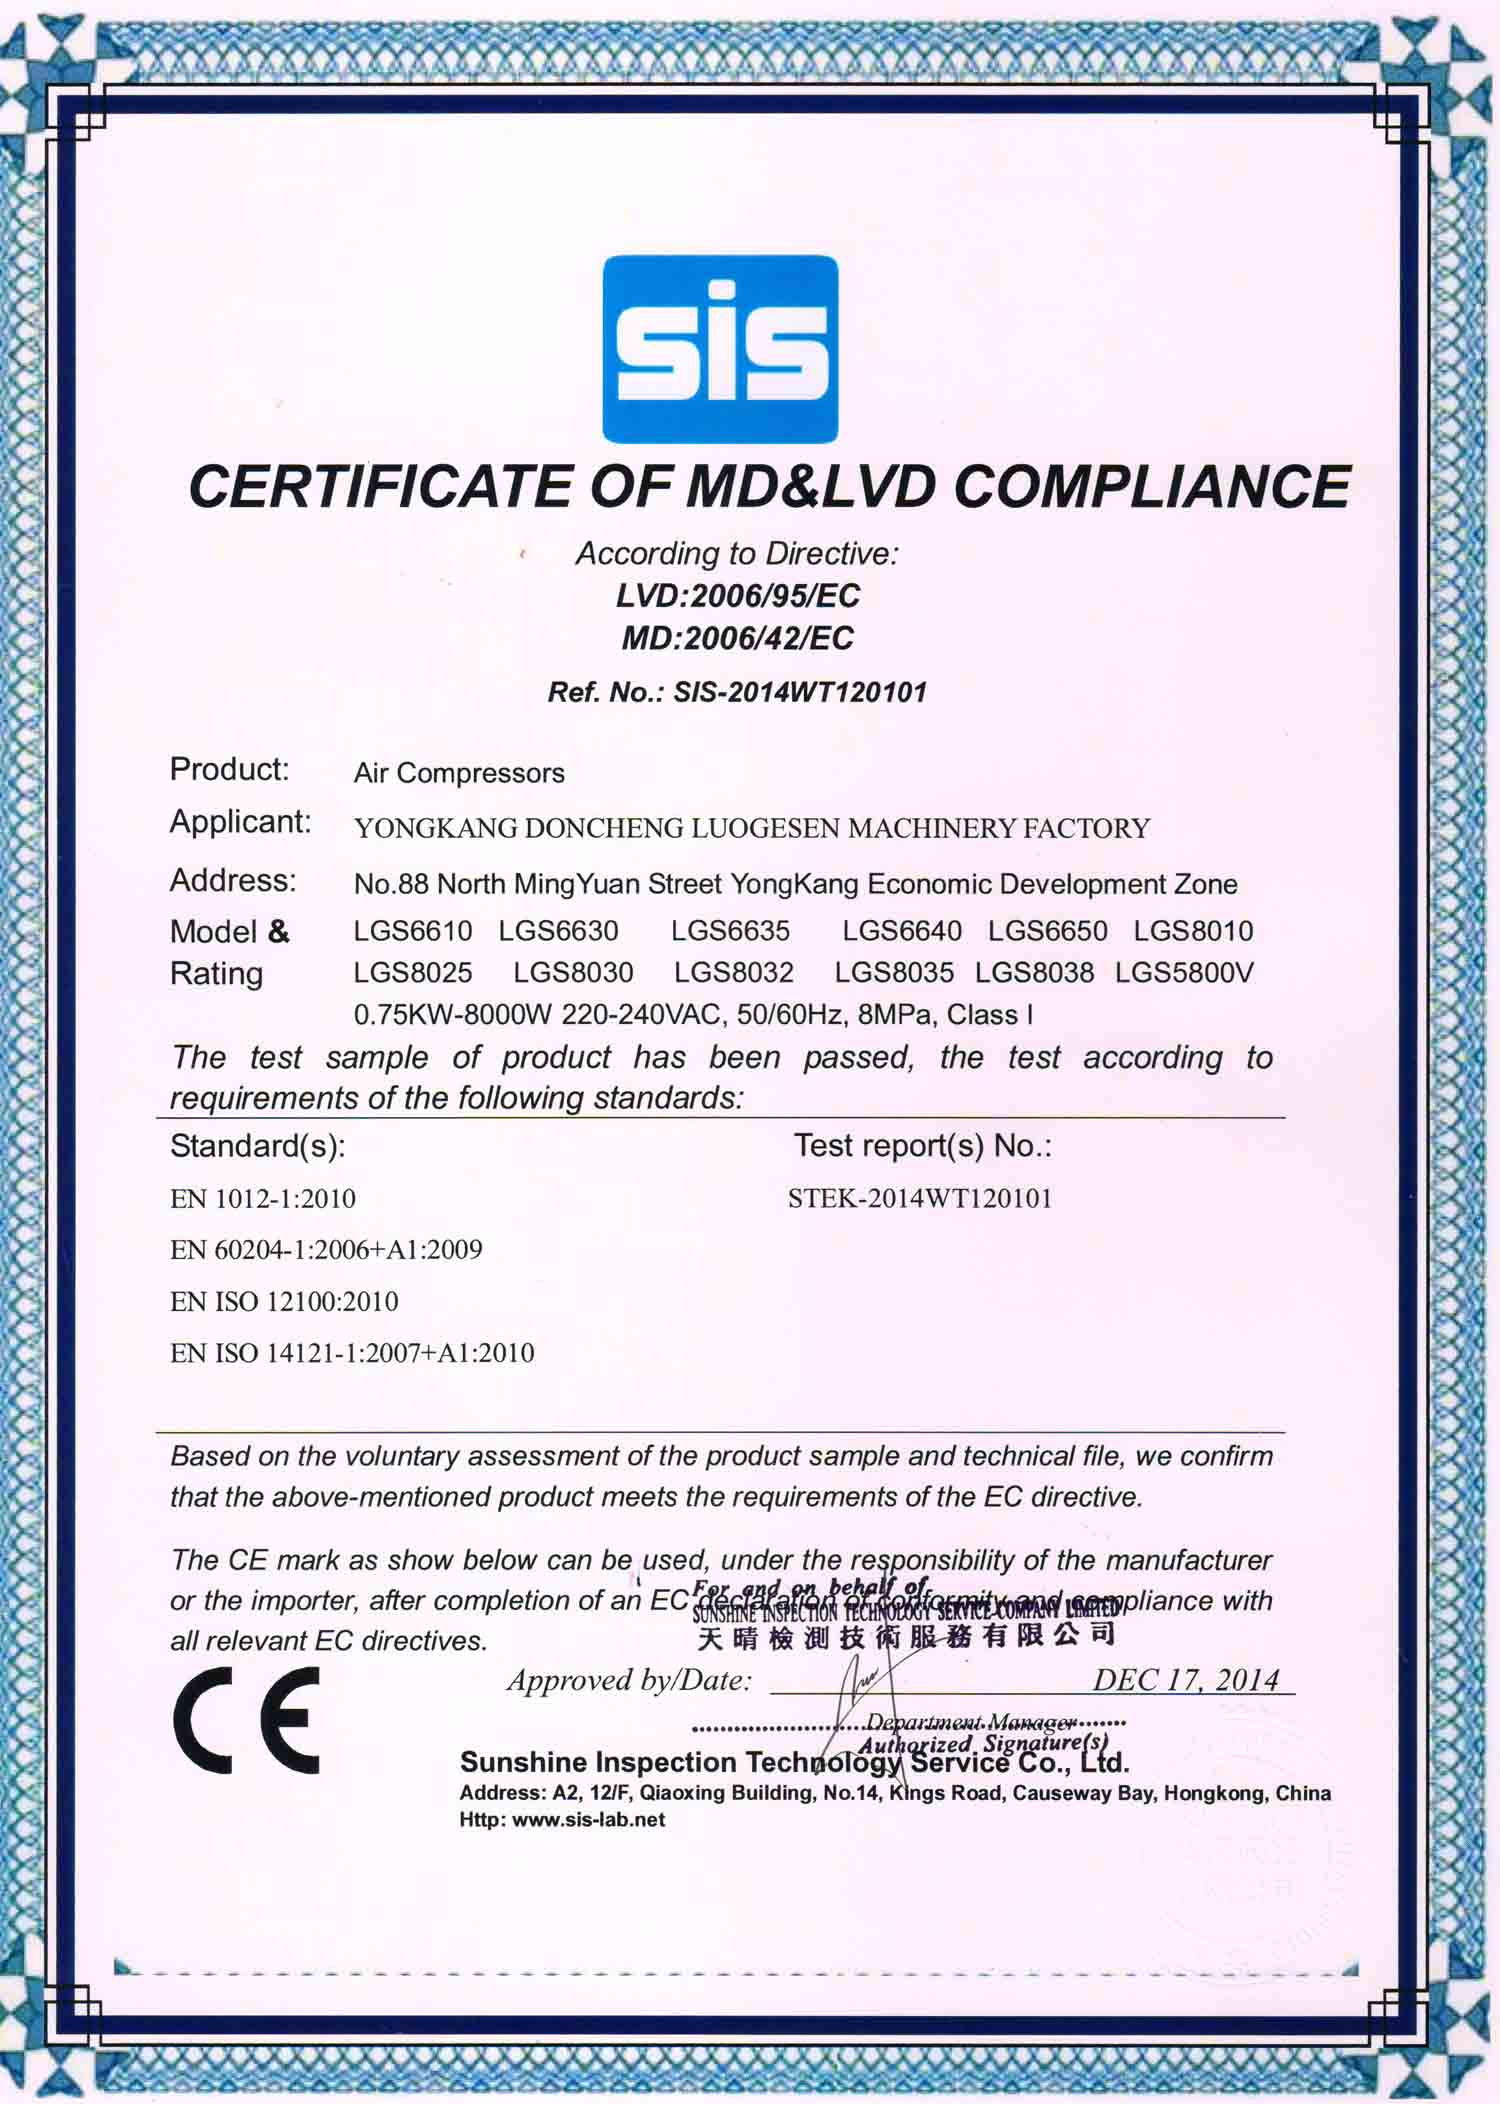 Certificate Of MD&LVD Compliance